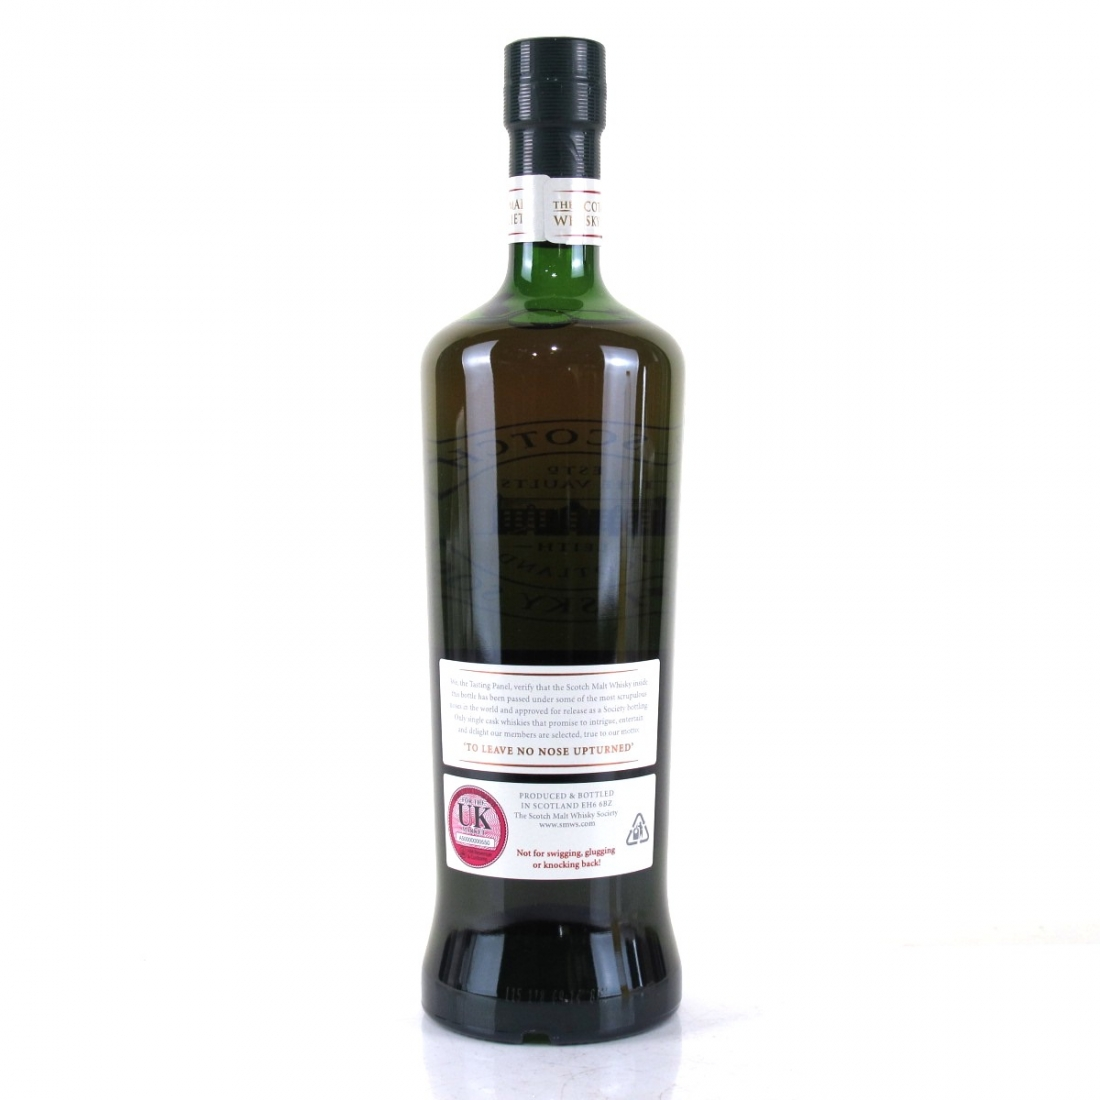 Glen Moray 1994 SMWS 20 Year Old 35.135